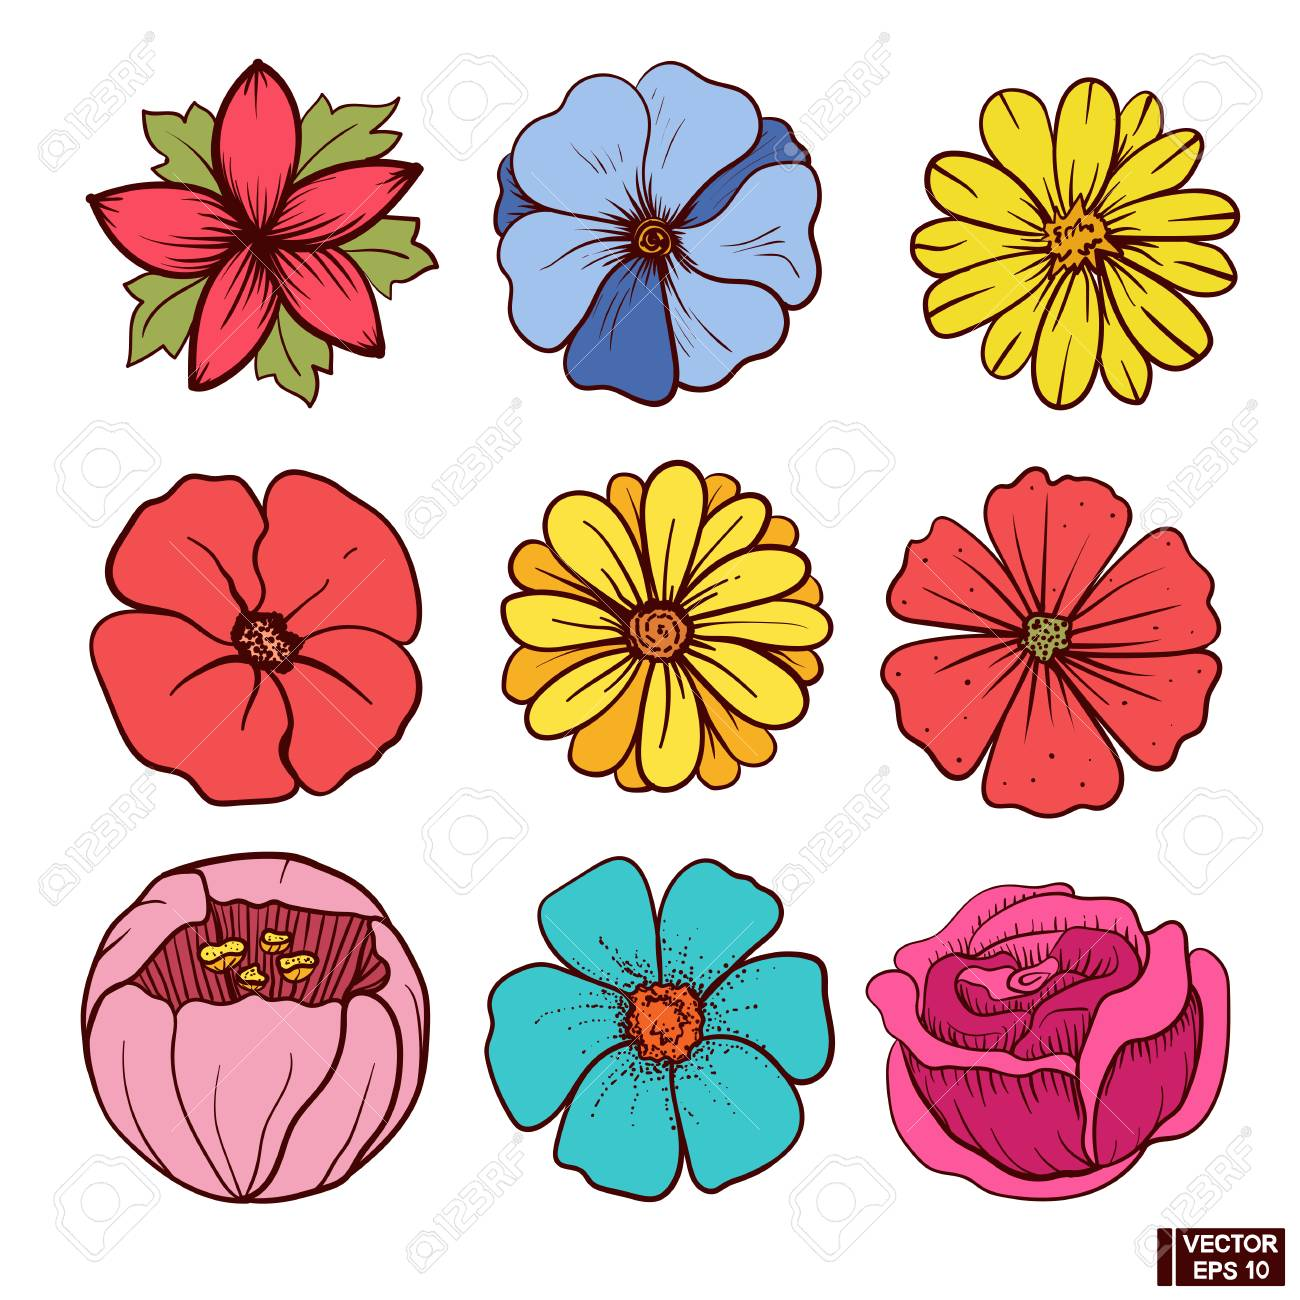 Vector Image A Set Of Beautiful Color Flowers Flowers Hand Royalty Free Cliparts Vectors And Stock Illustration Image 86227103